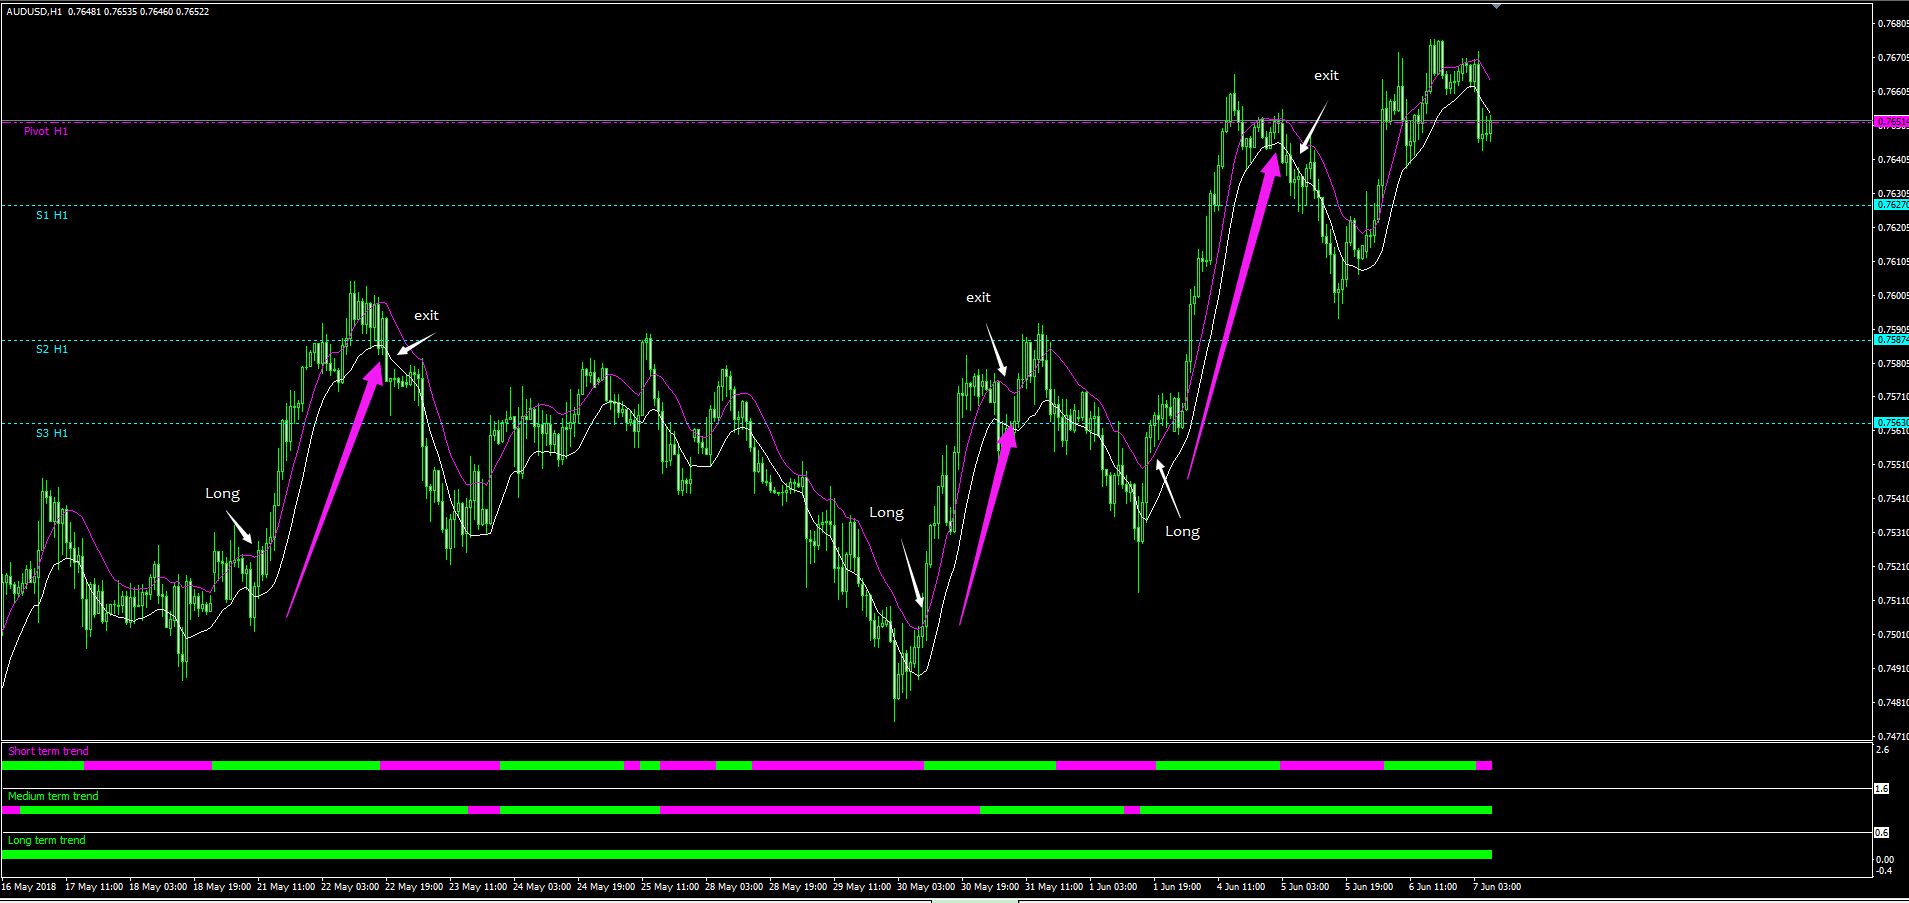 Intraday short term trade setup